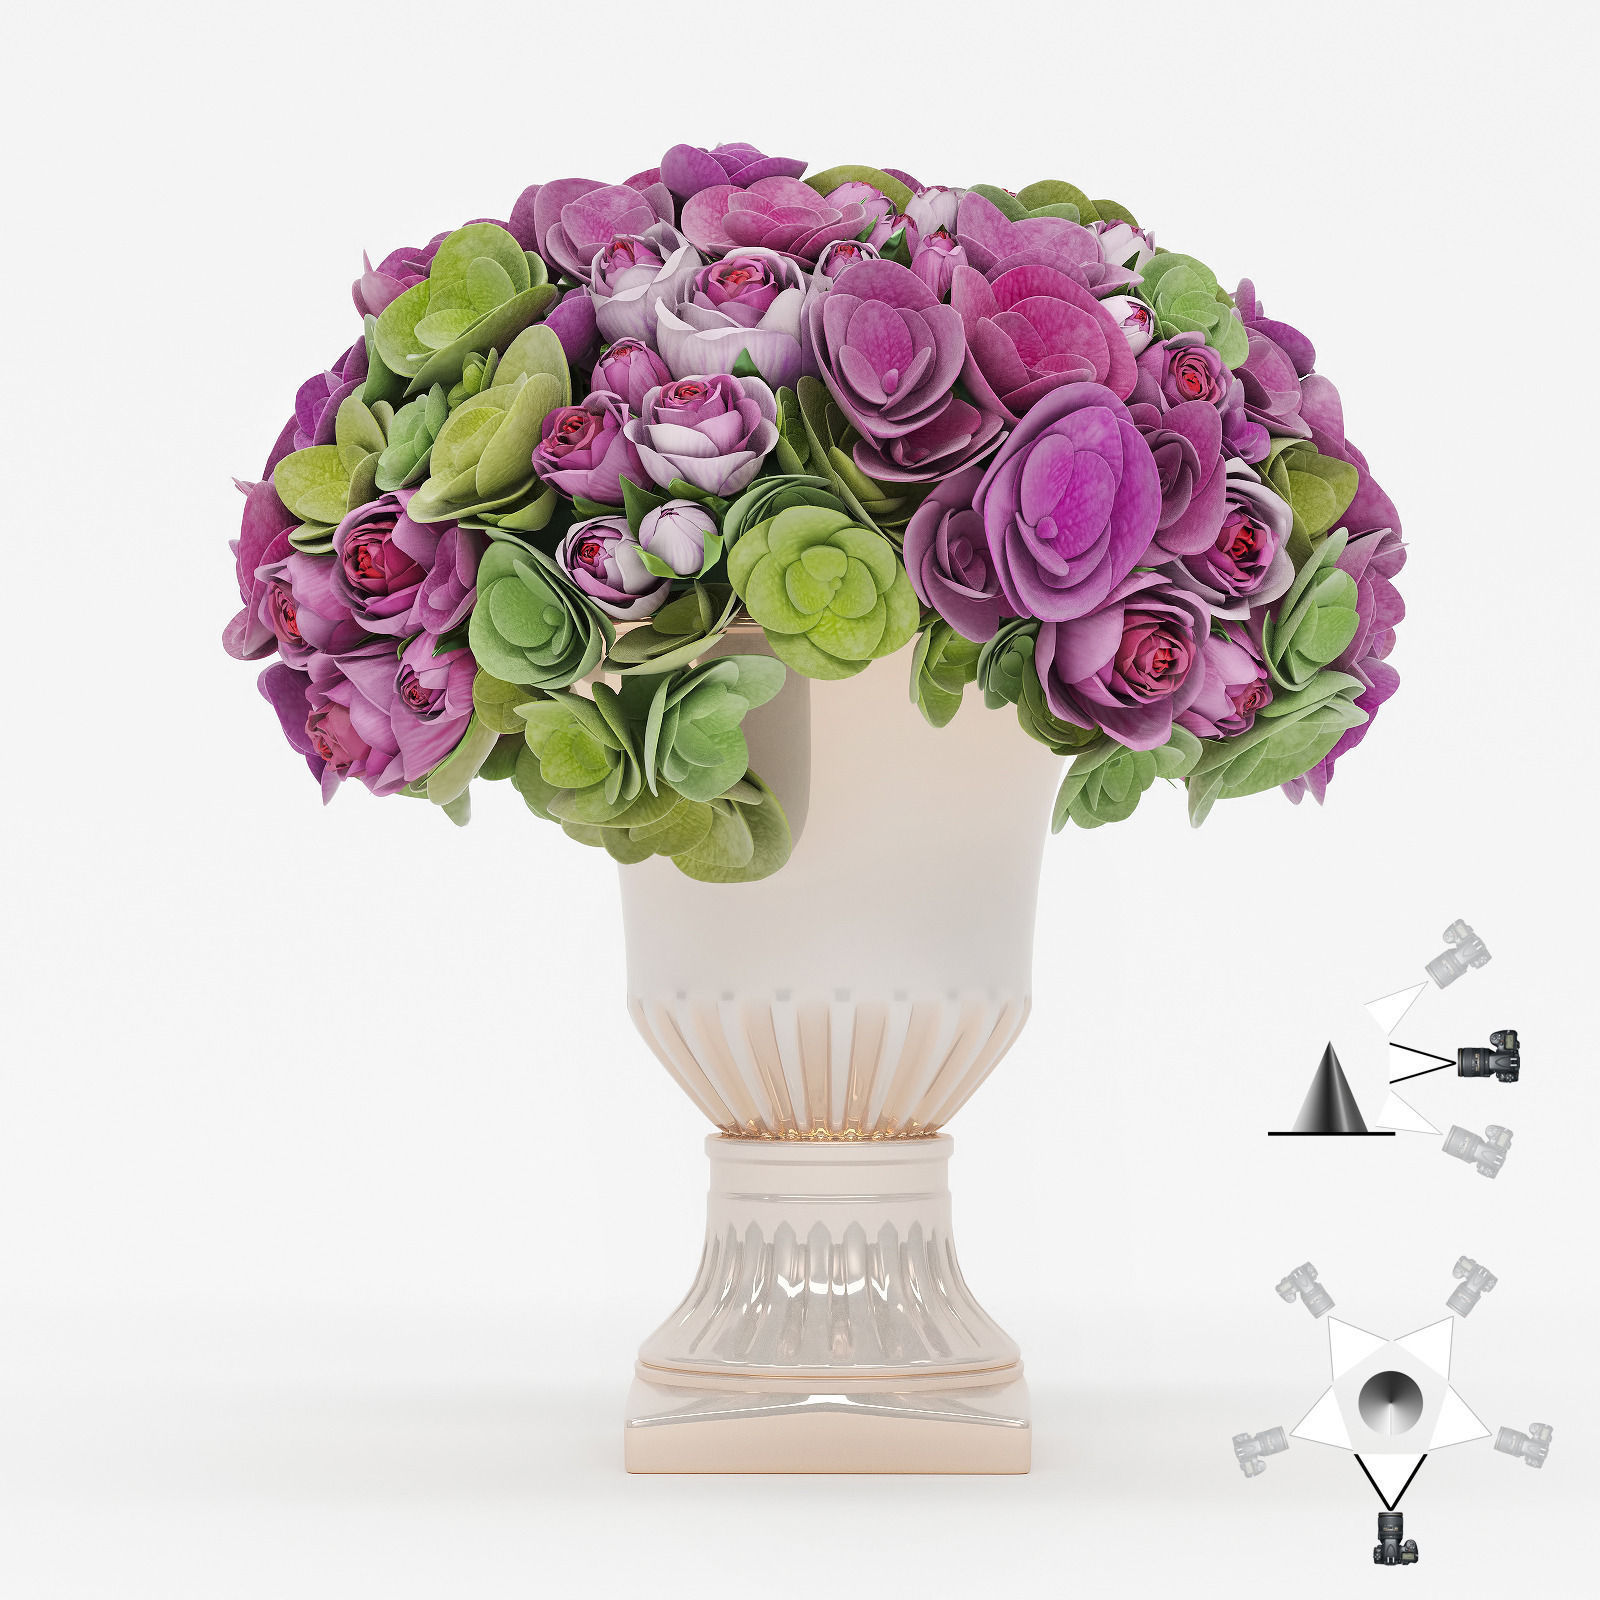 3D Bouquet of roses and hydrangea flowers | CGTrader